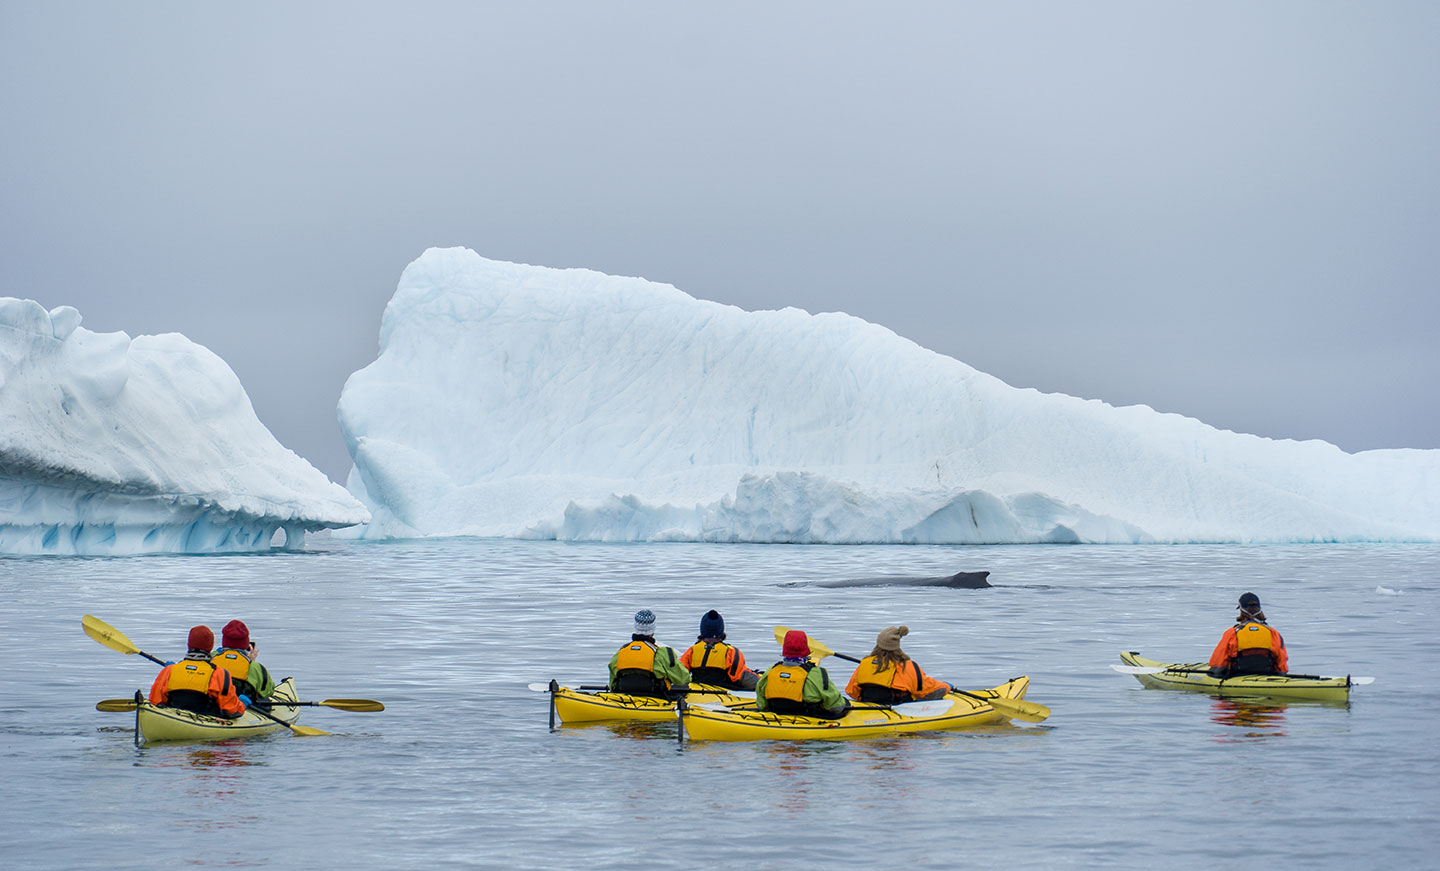 Quark Expeditions guests participate in the Sea Kayaking program during an Antarctic voyage